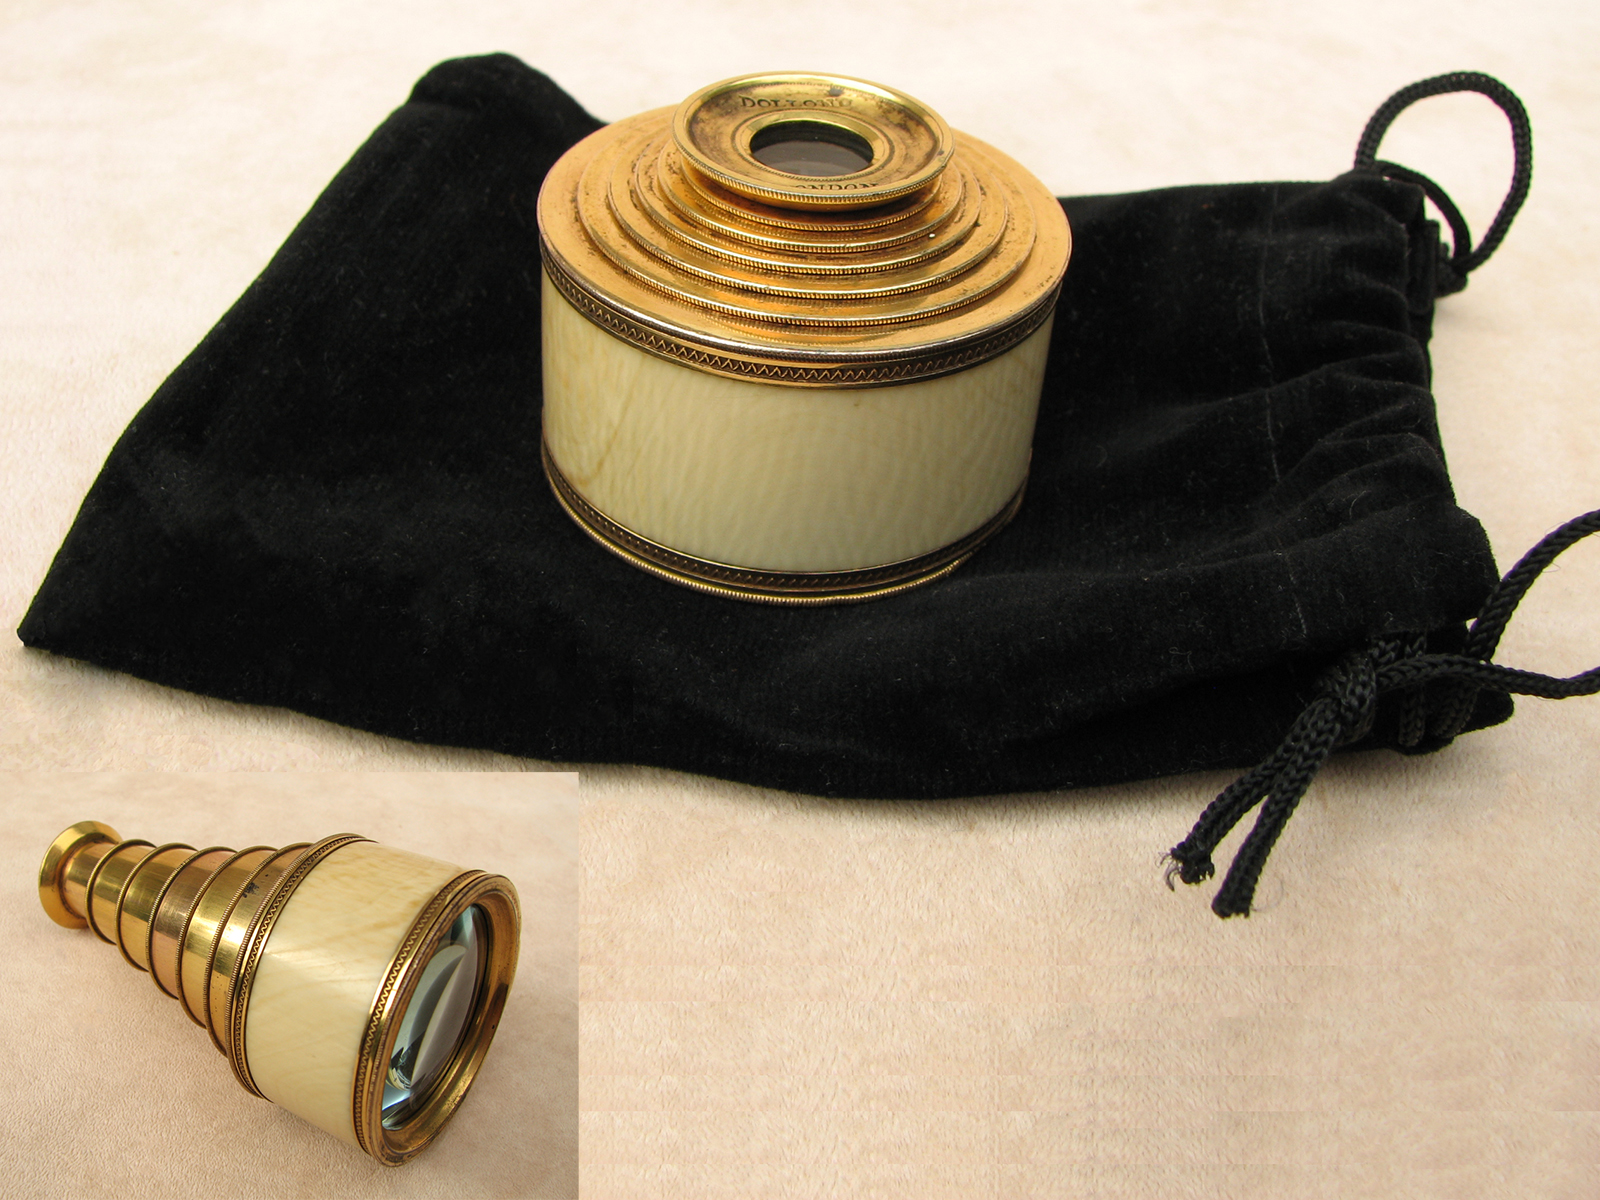 Rare Regency period monocular spyglass signed DOLLOND LONDON